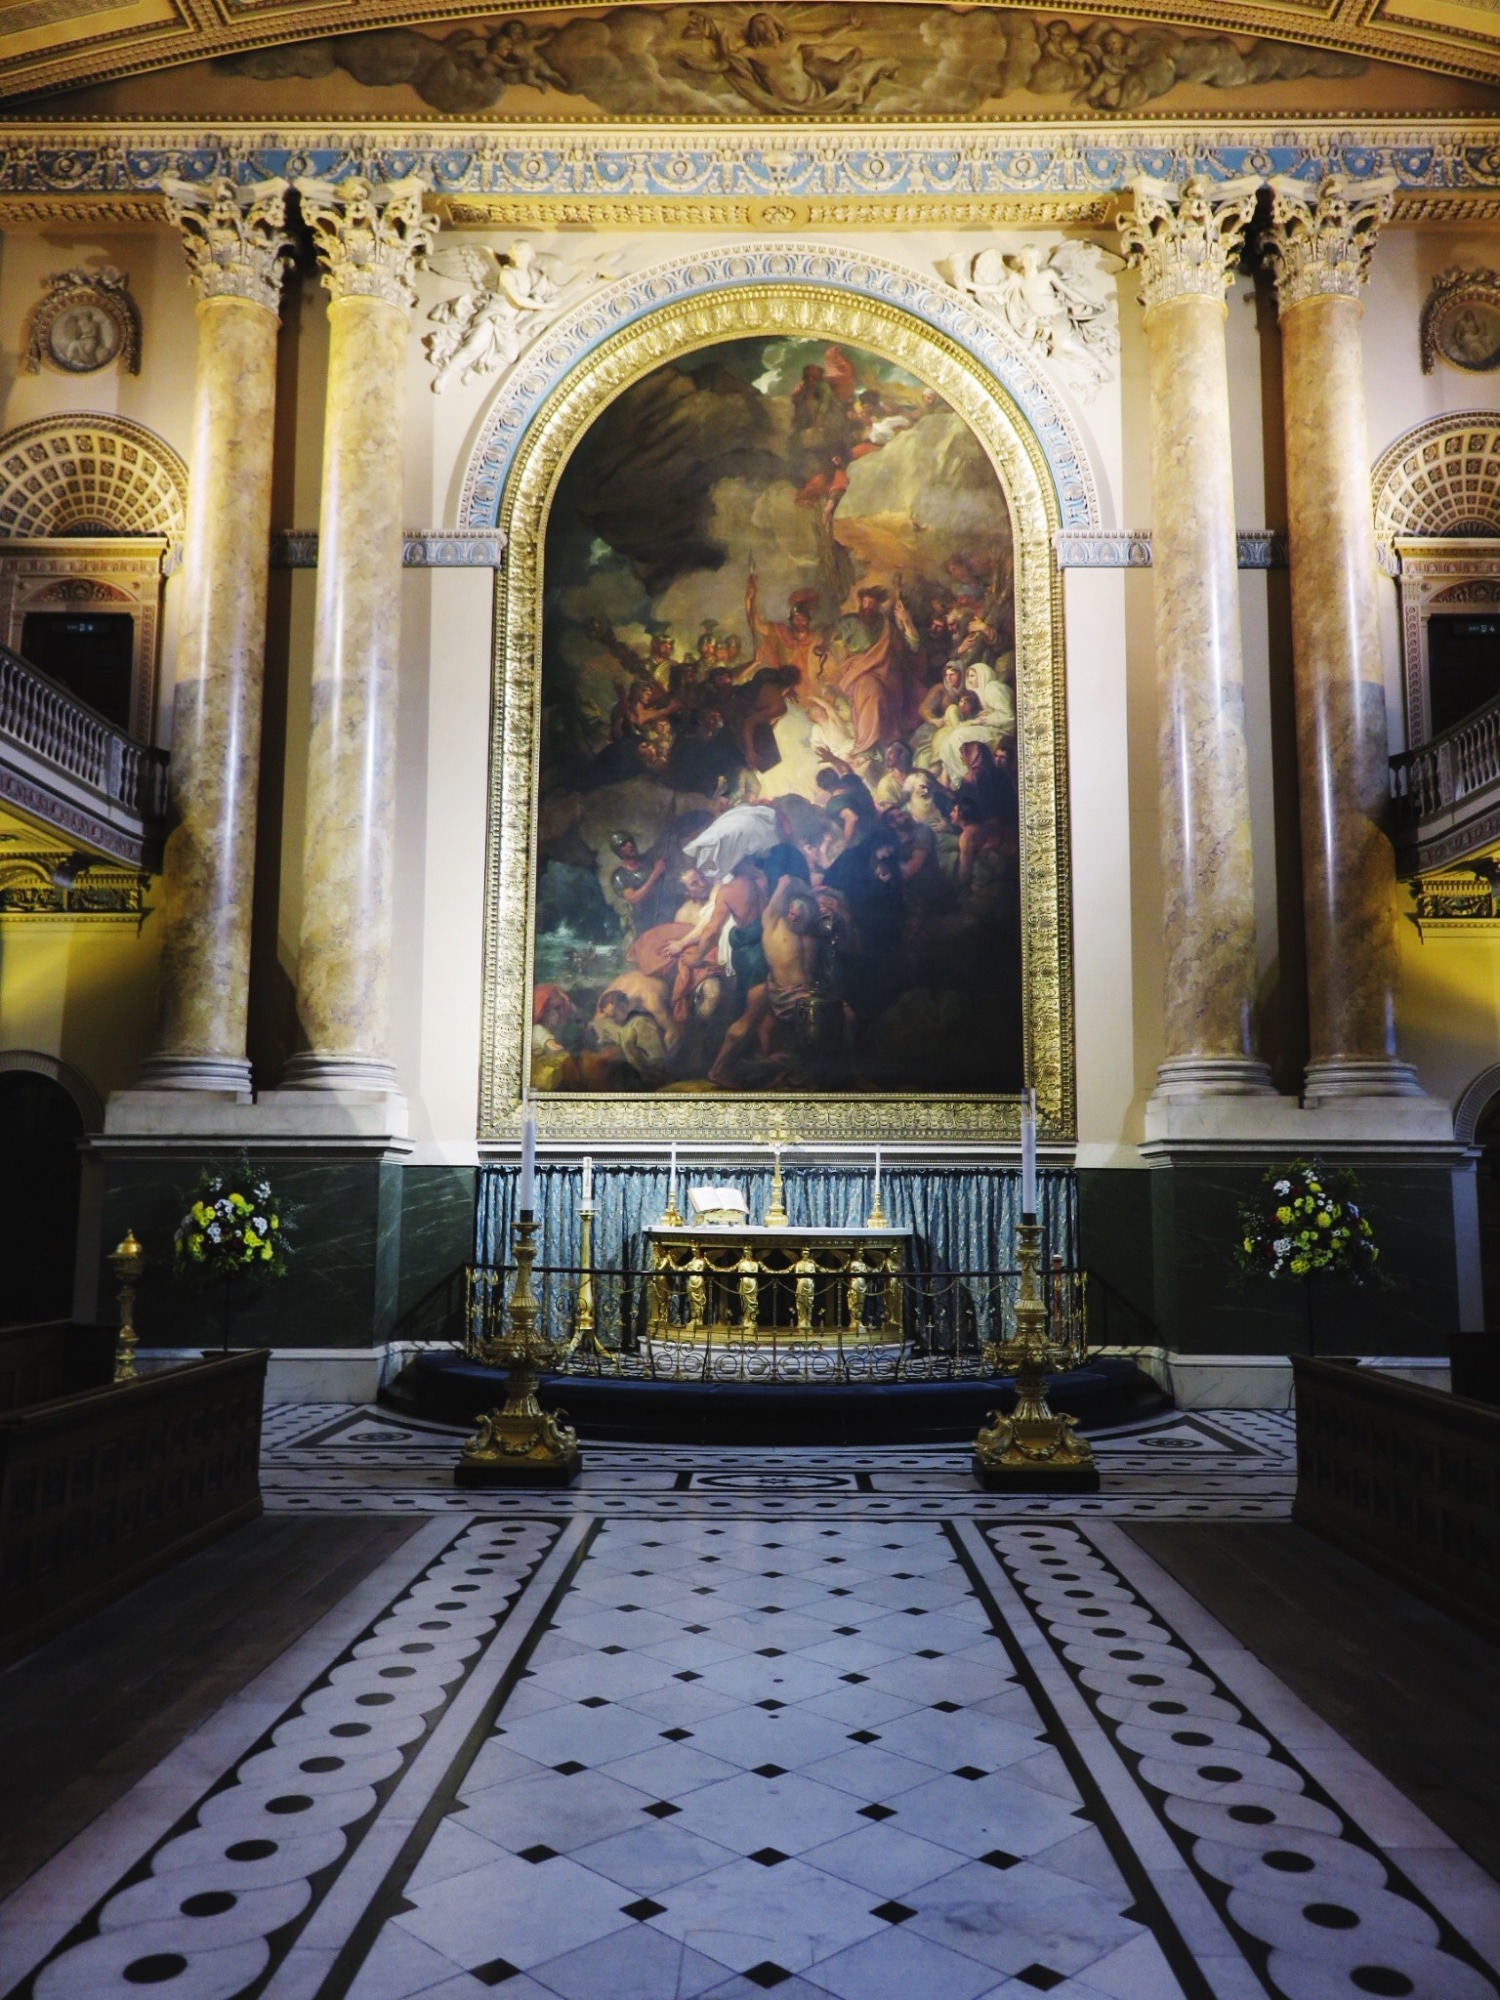 The Chapel at the Old Naval College